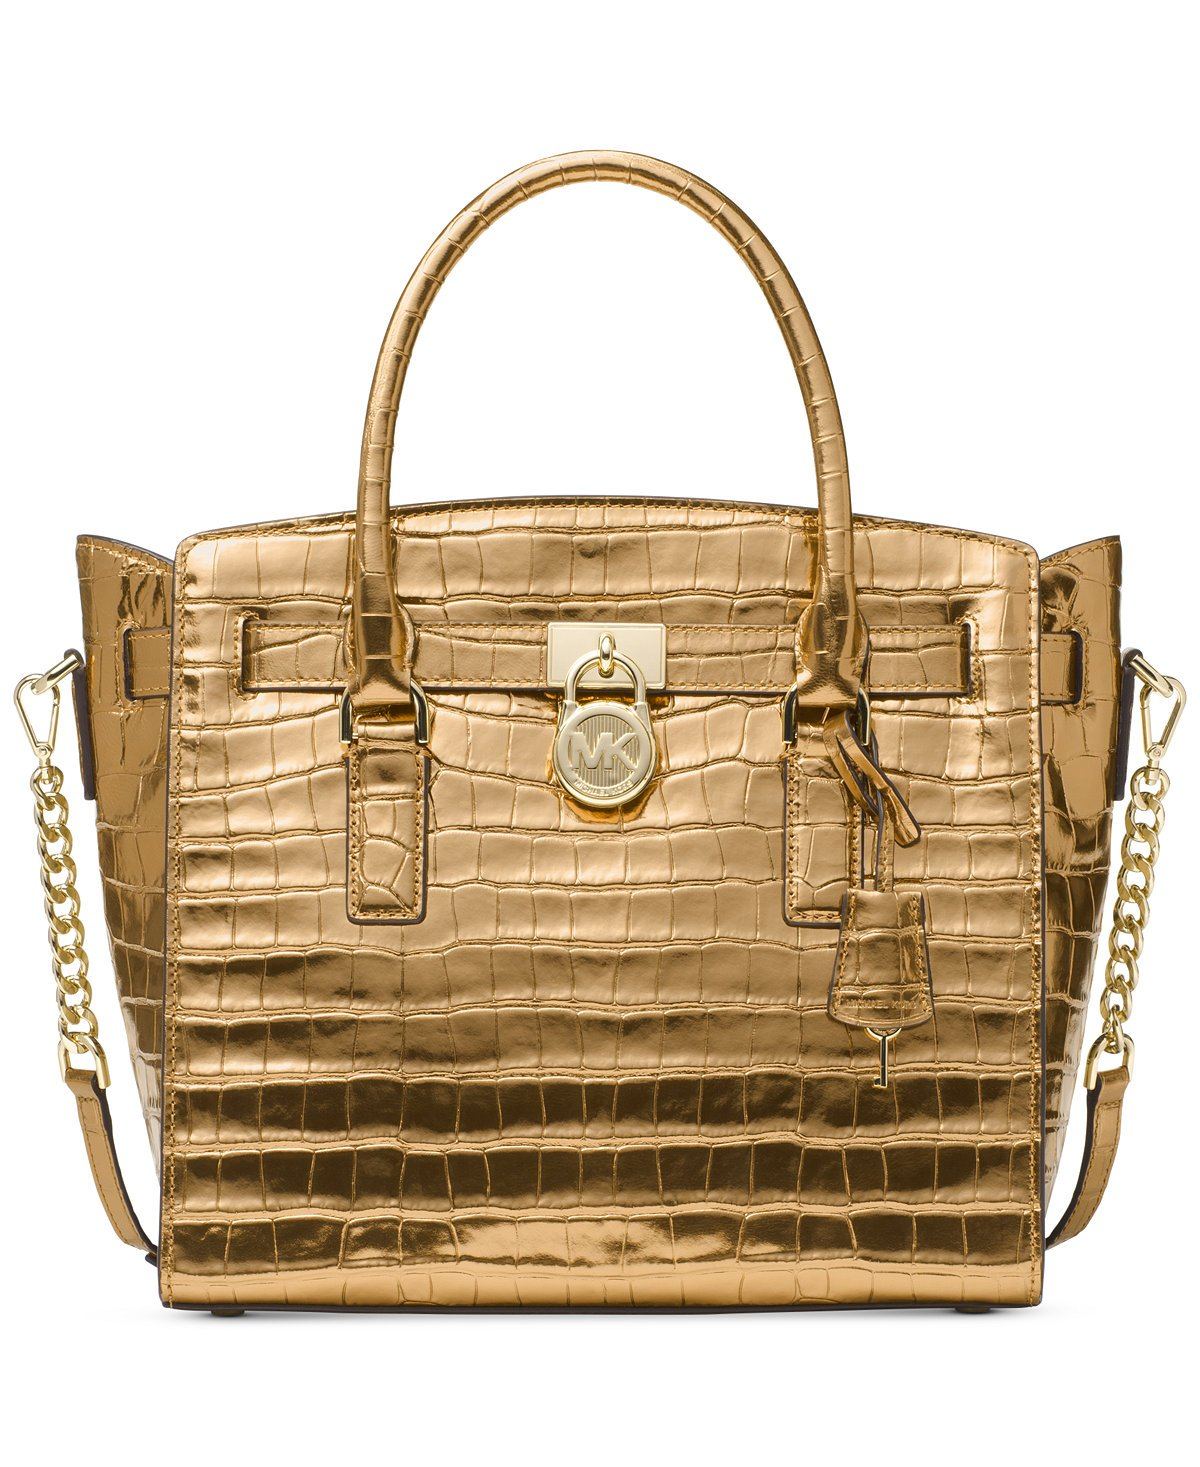 MICHAEL Michael Kors Studio Hamilton Large East West Satchel (Gold) by Michael Kors